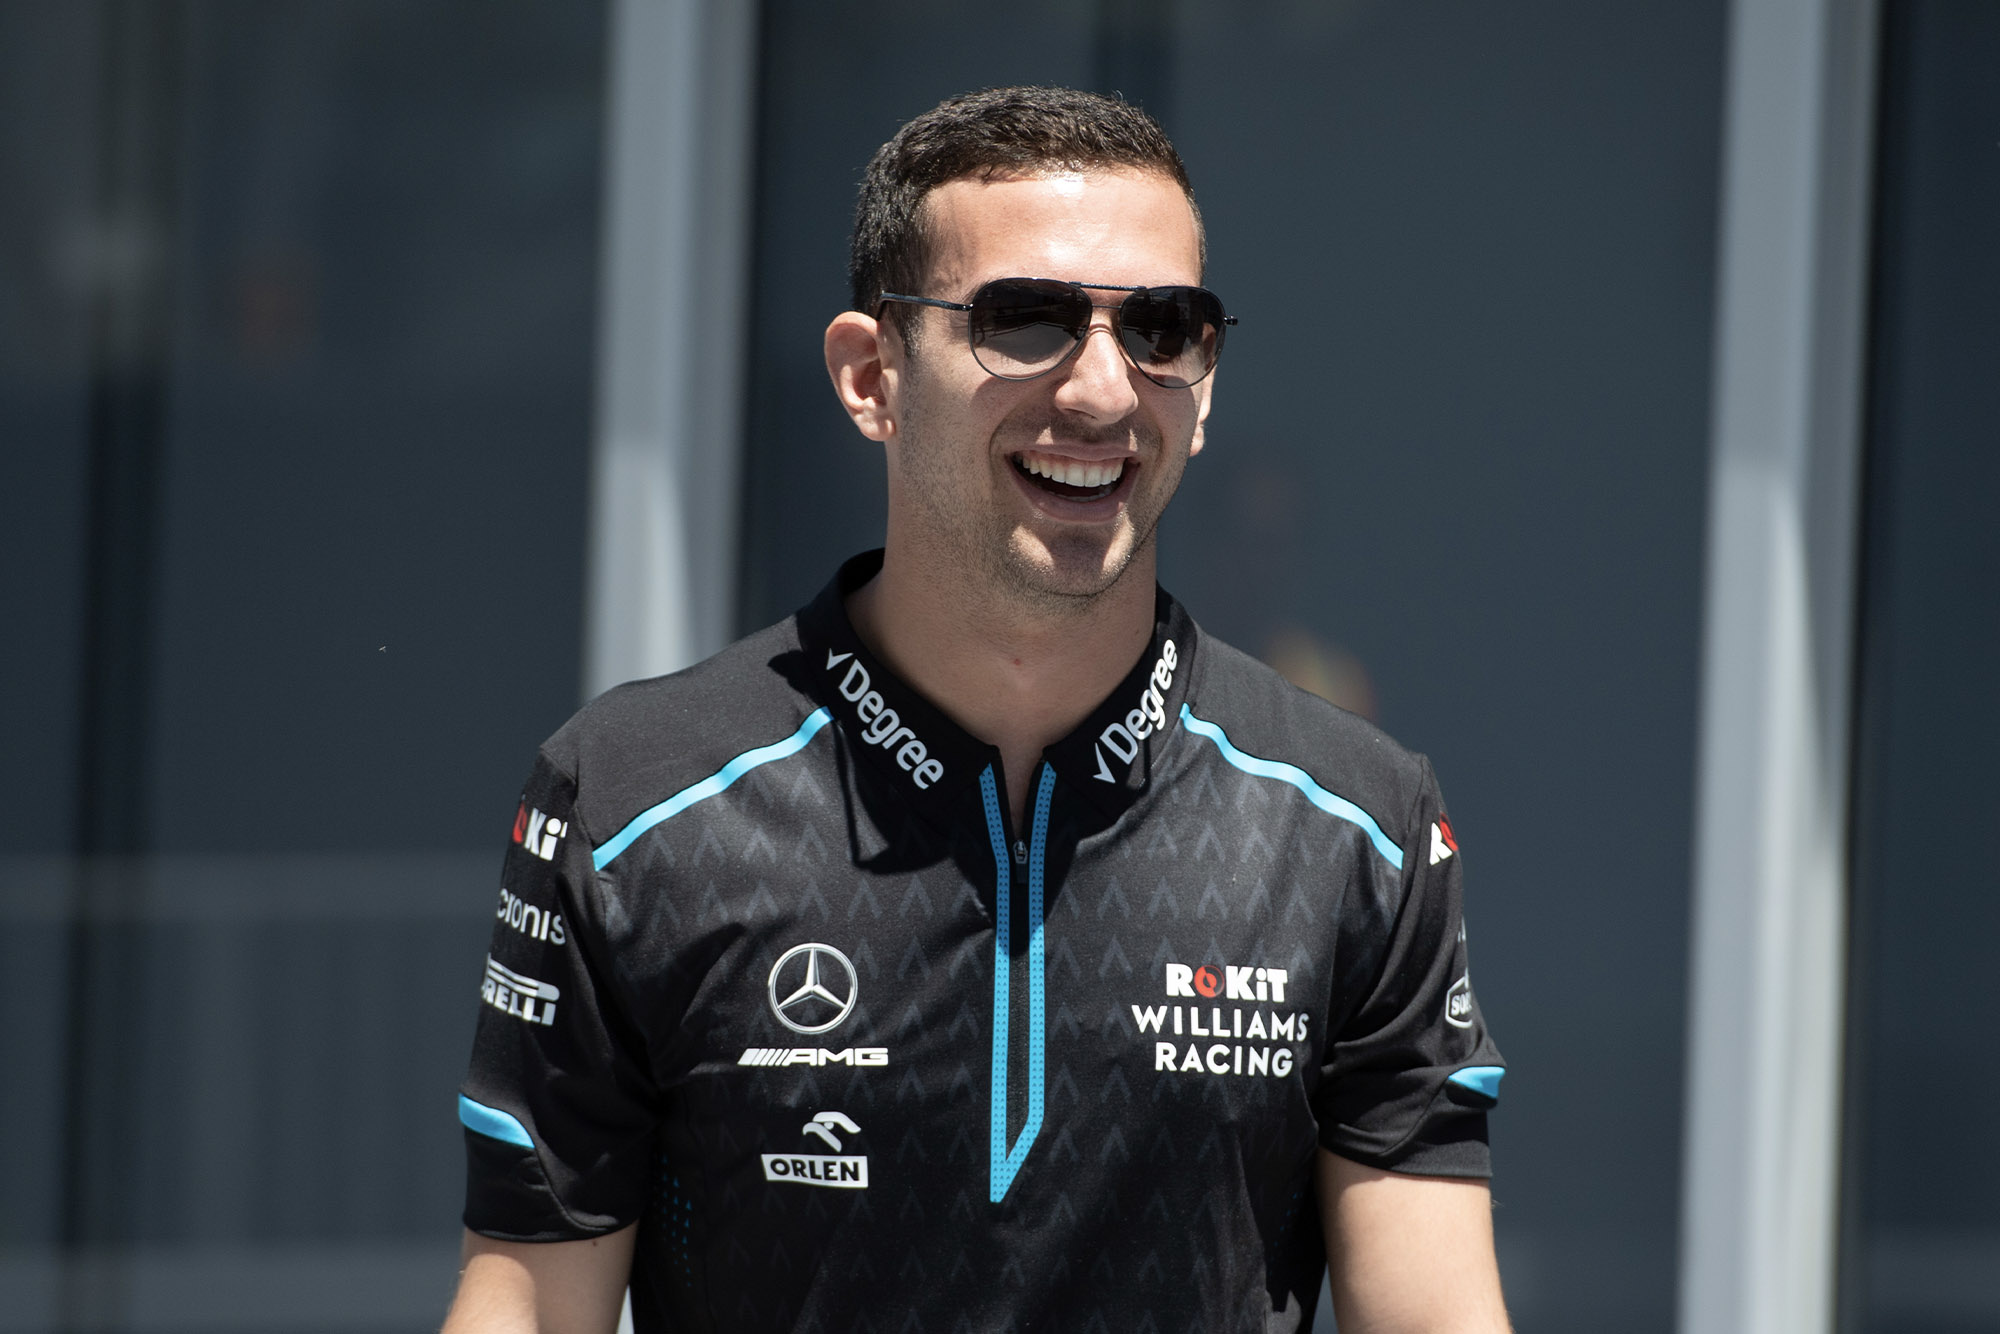 Nicholas Latifi in Williams gear during the 2019 Formula 1 season